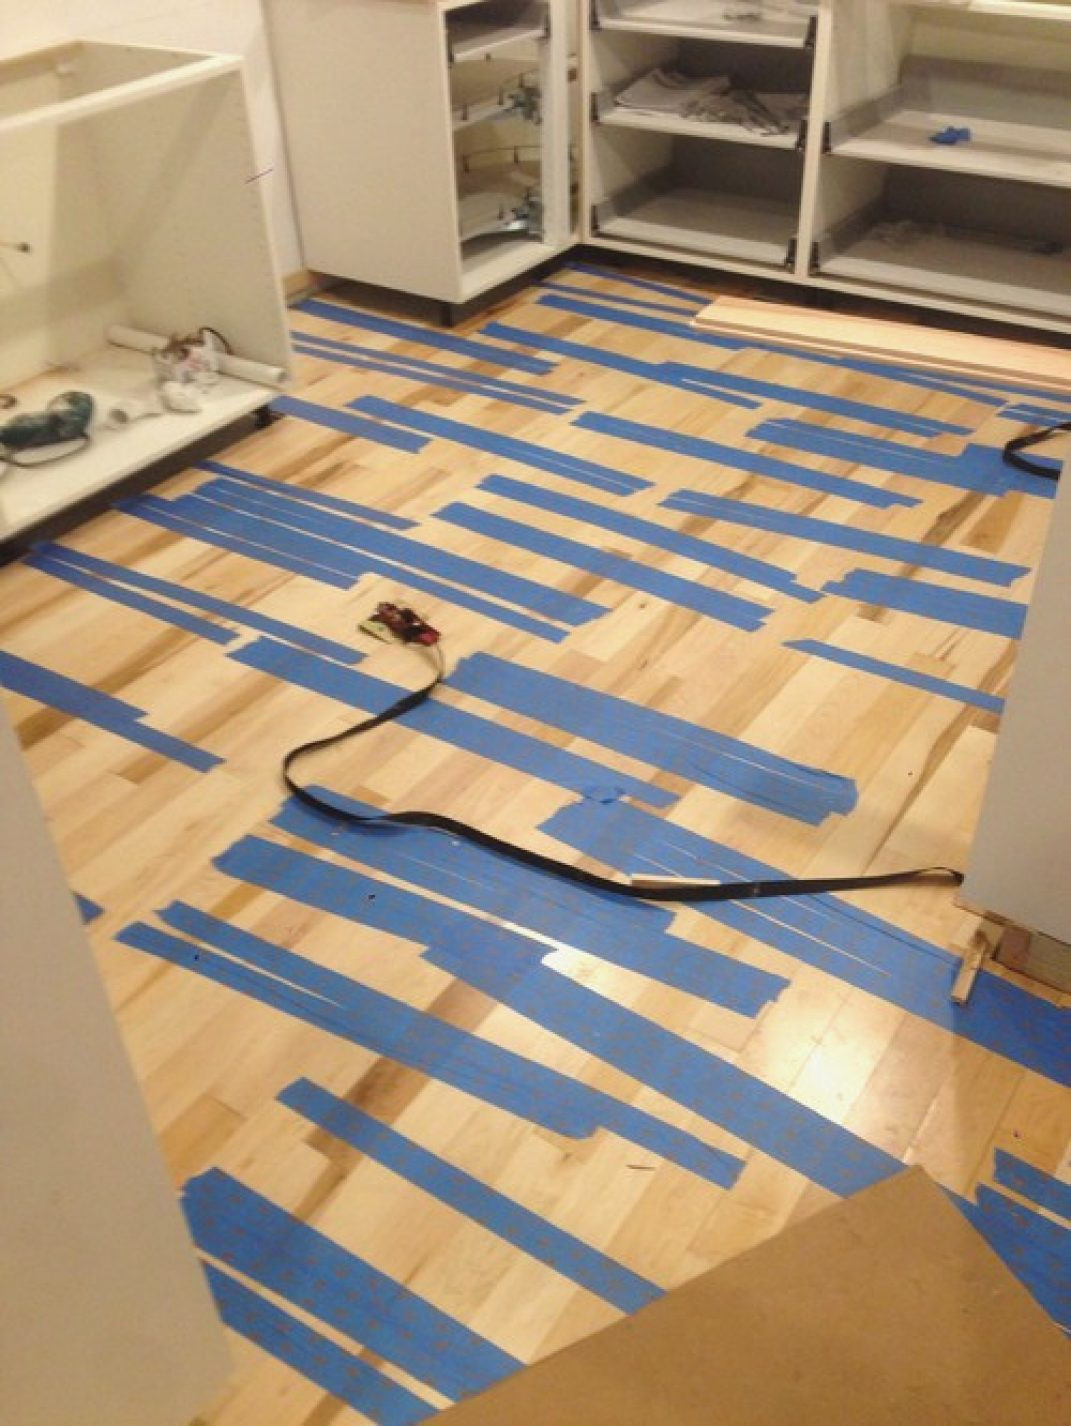 how to glue hardwood floors to concrete of wood flooring glue gluing down prefinished solid hardwood floors in wood flooring glue gluing down prefinished solid hardwood floors directly quintessence engineered concrete bouniqueaz com